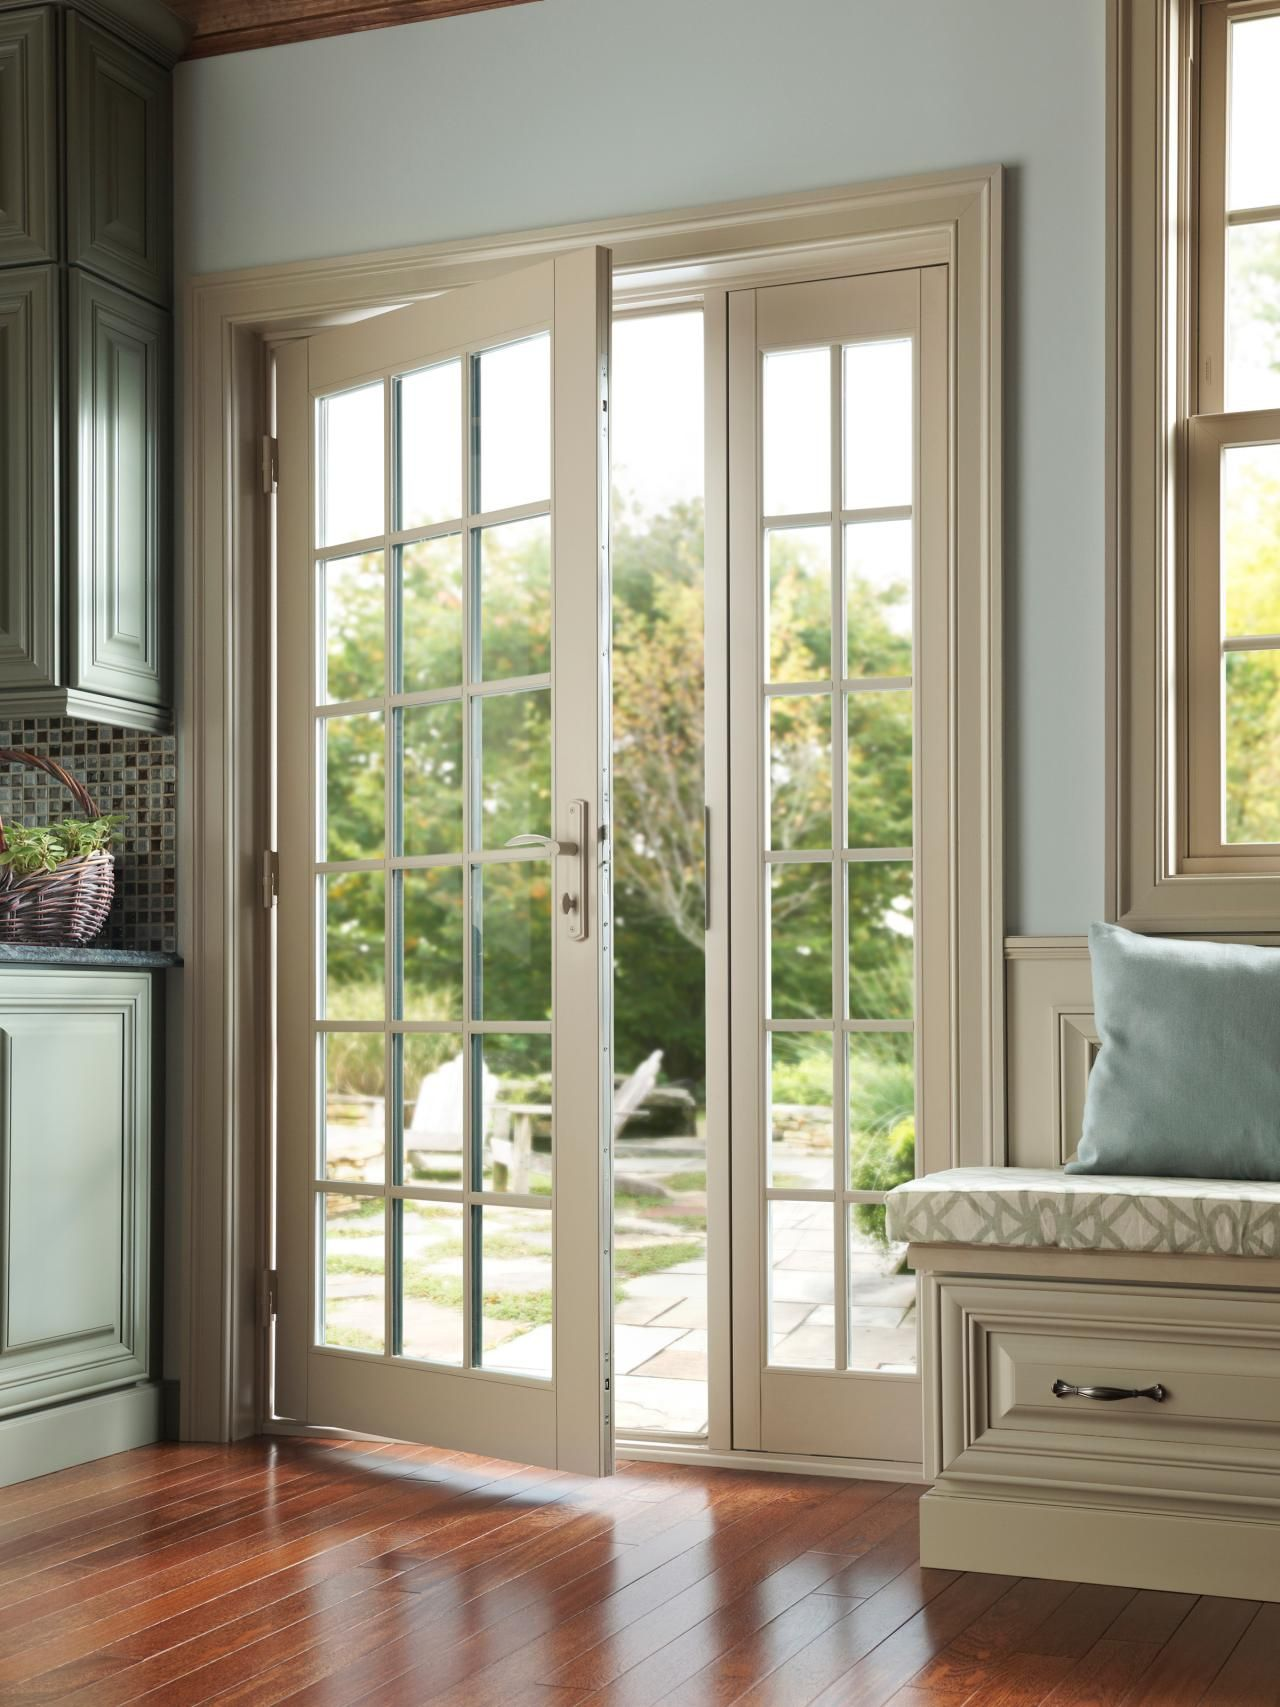 create a simple and elegant entryway to your outdoor space with sliding patio doors